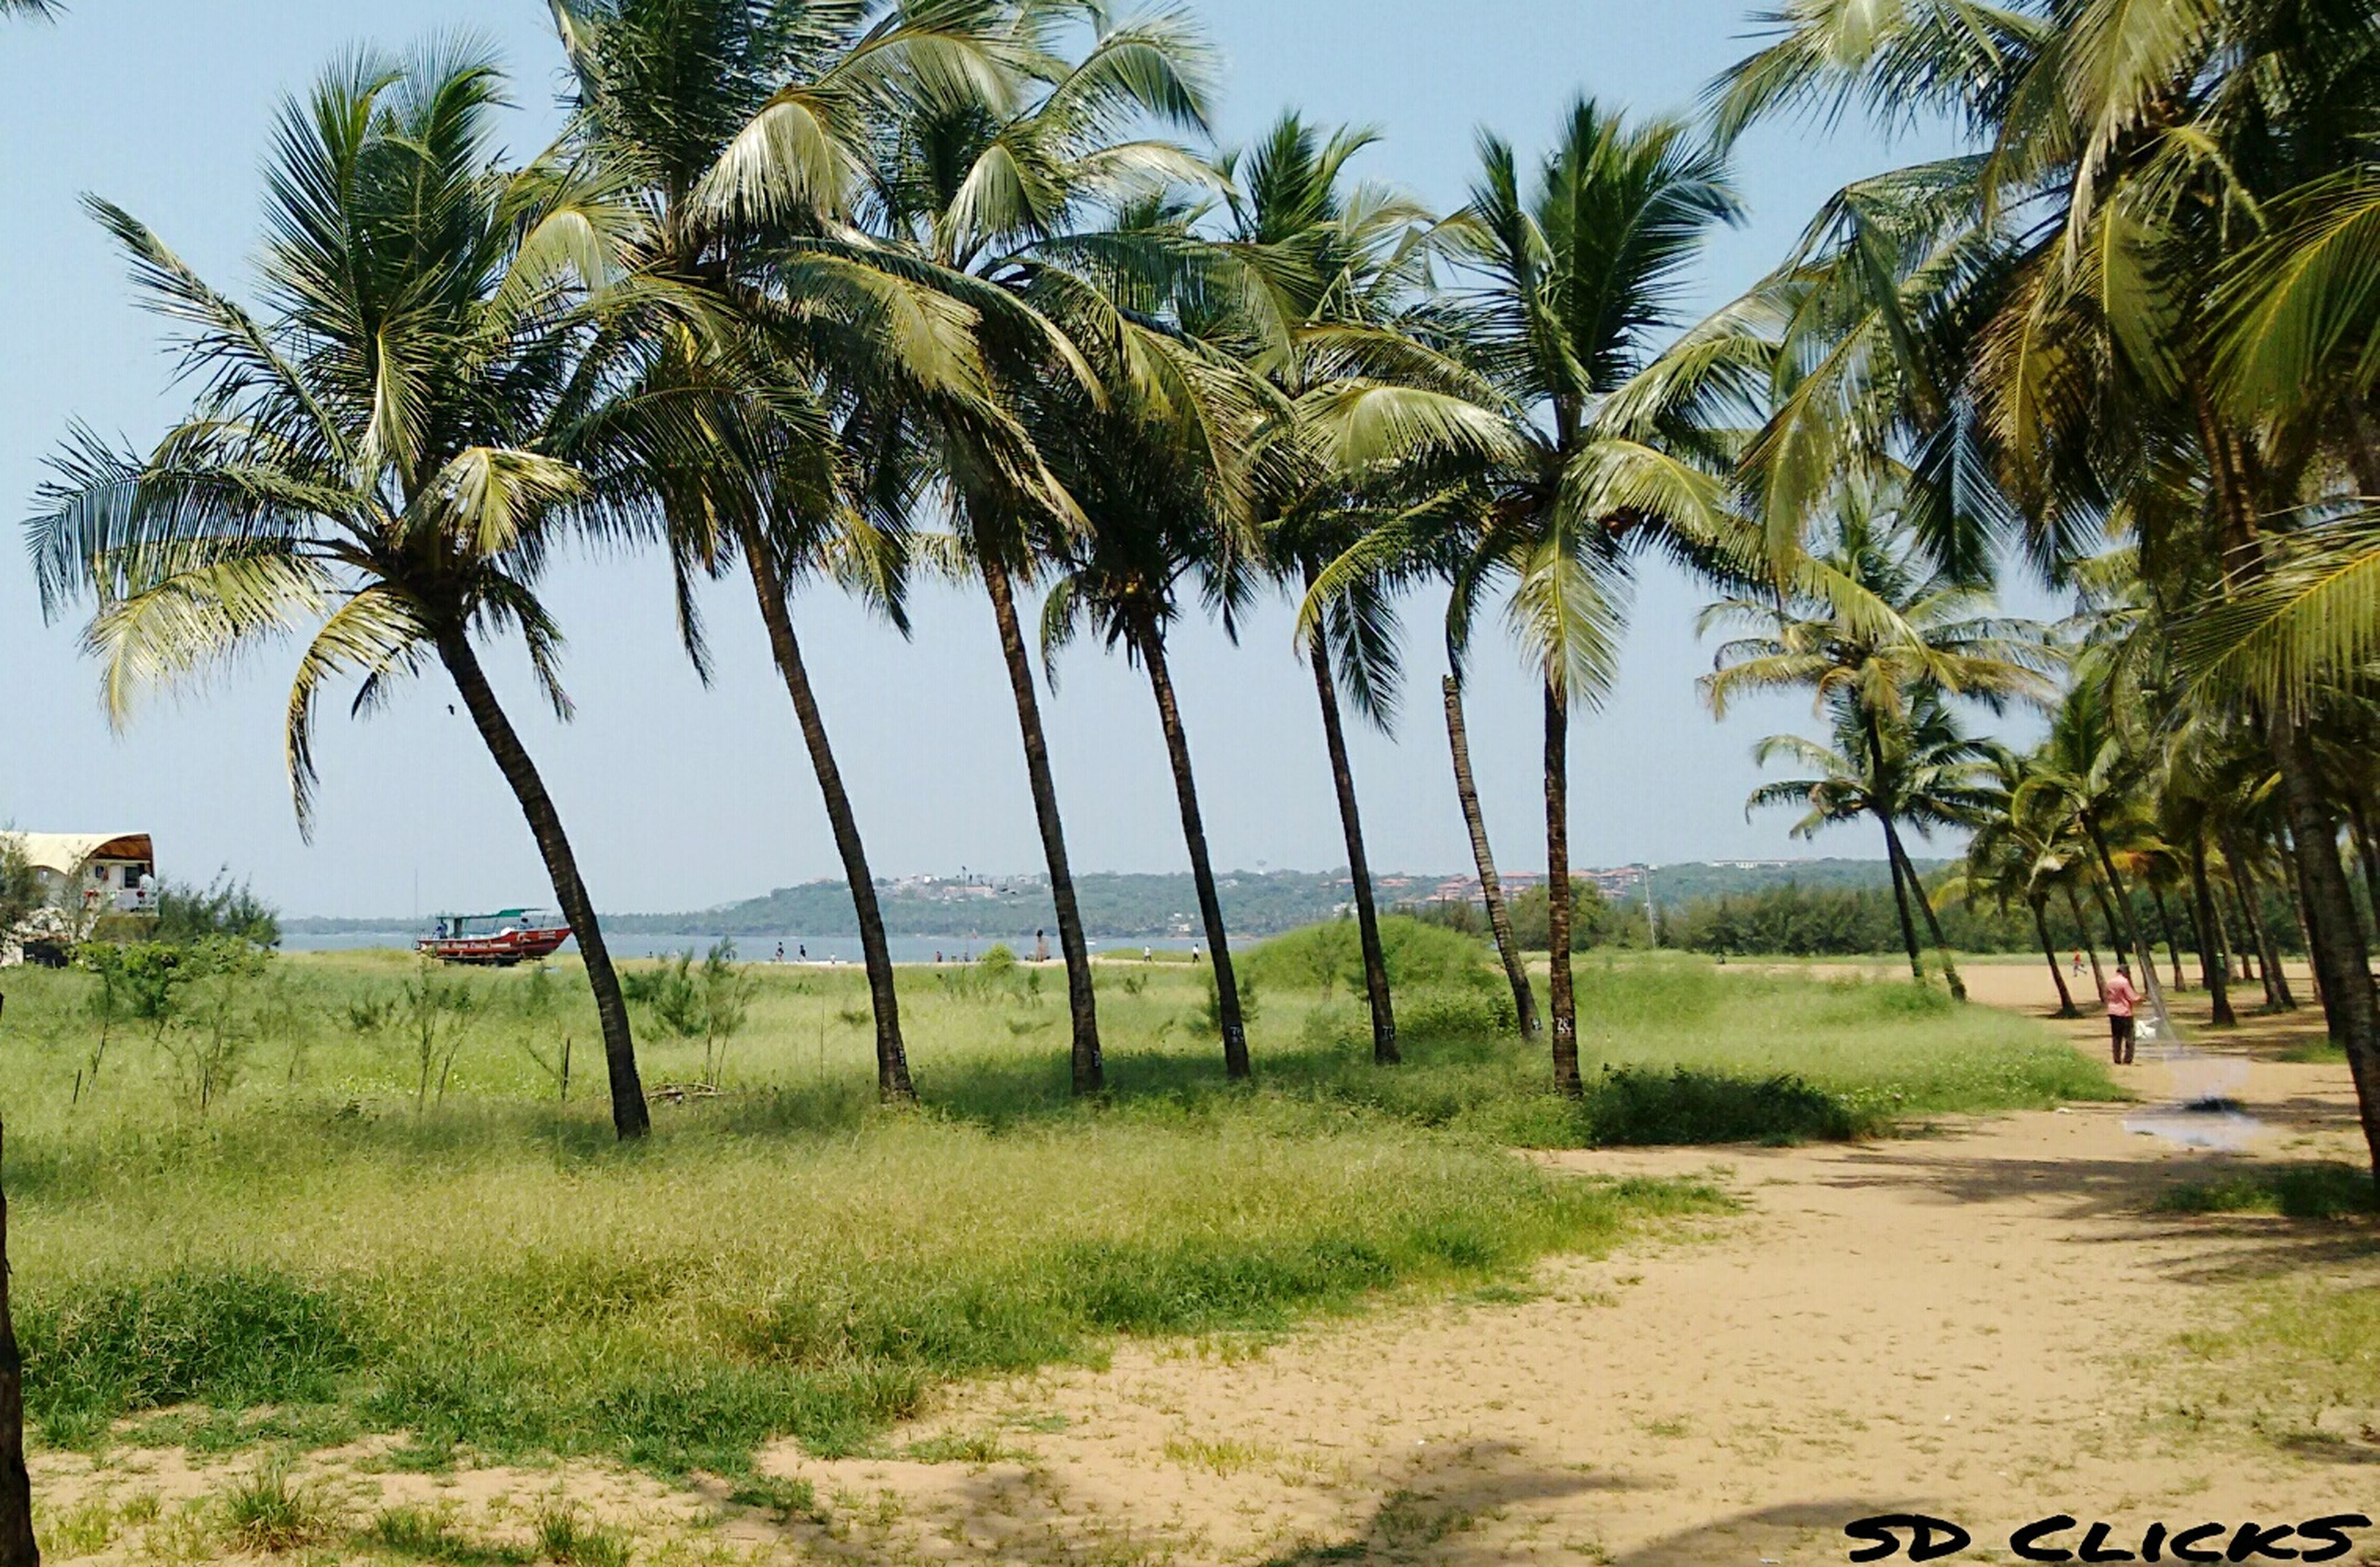 tree, palm tree, tranquility, growth, grass, tranquil scene, green color, tree trunk, nature, scenics, beauty in nature, sky, shadow, beach, landscape, sunlight, branch, day, sea, footpath